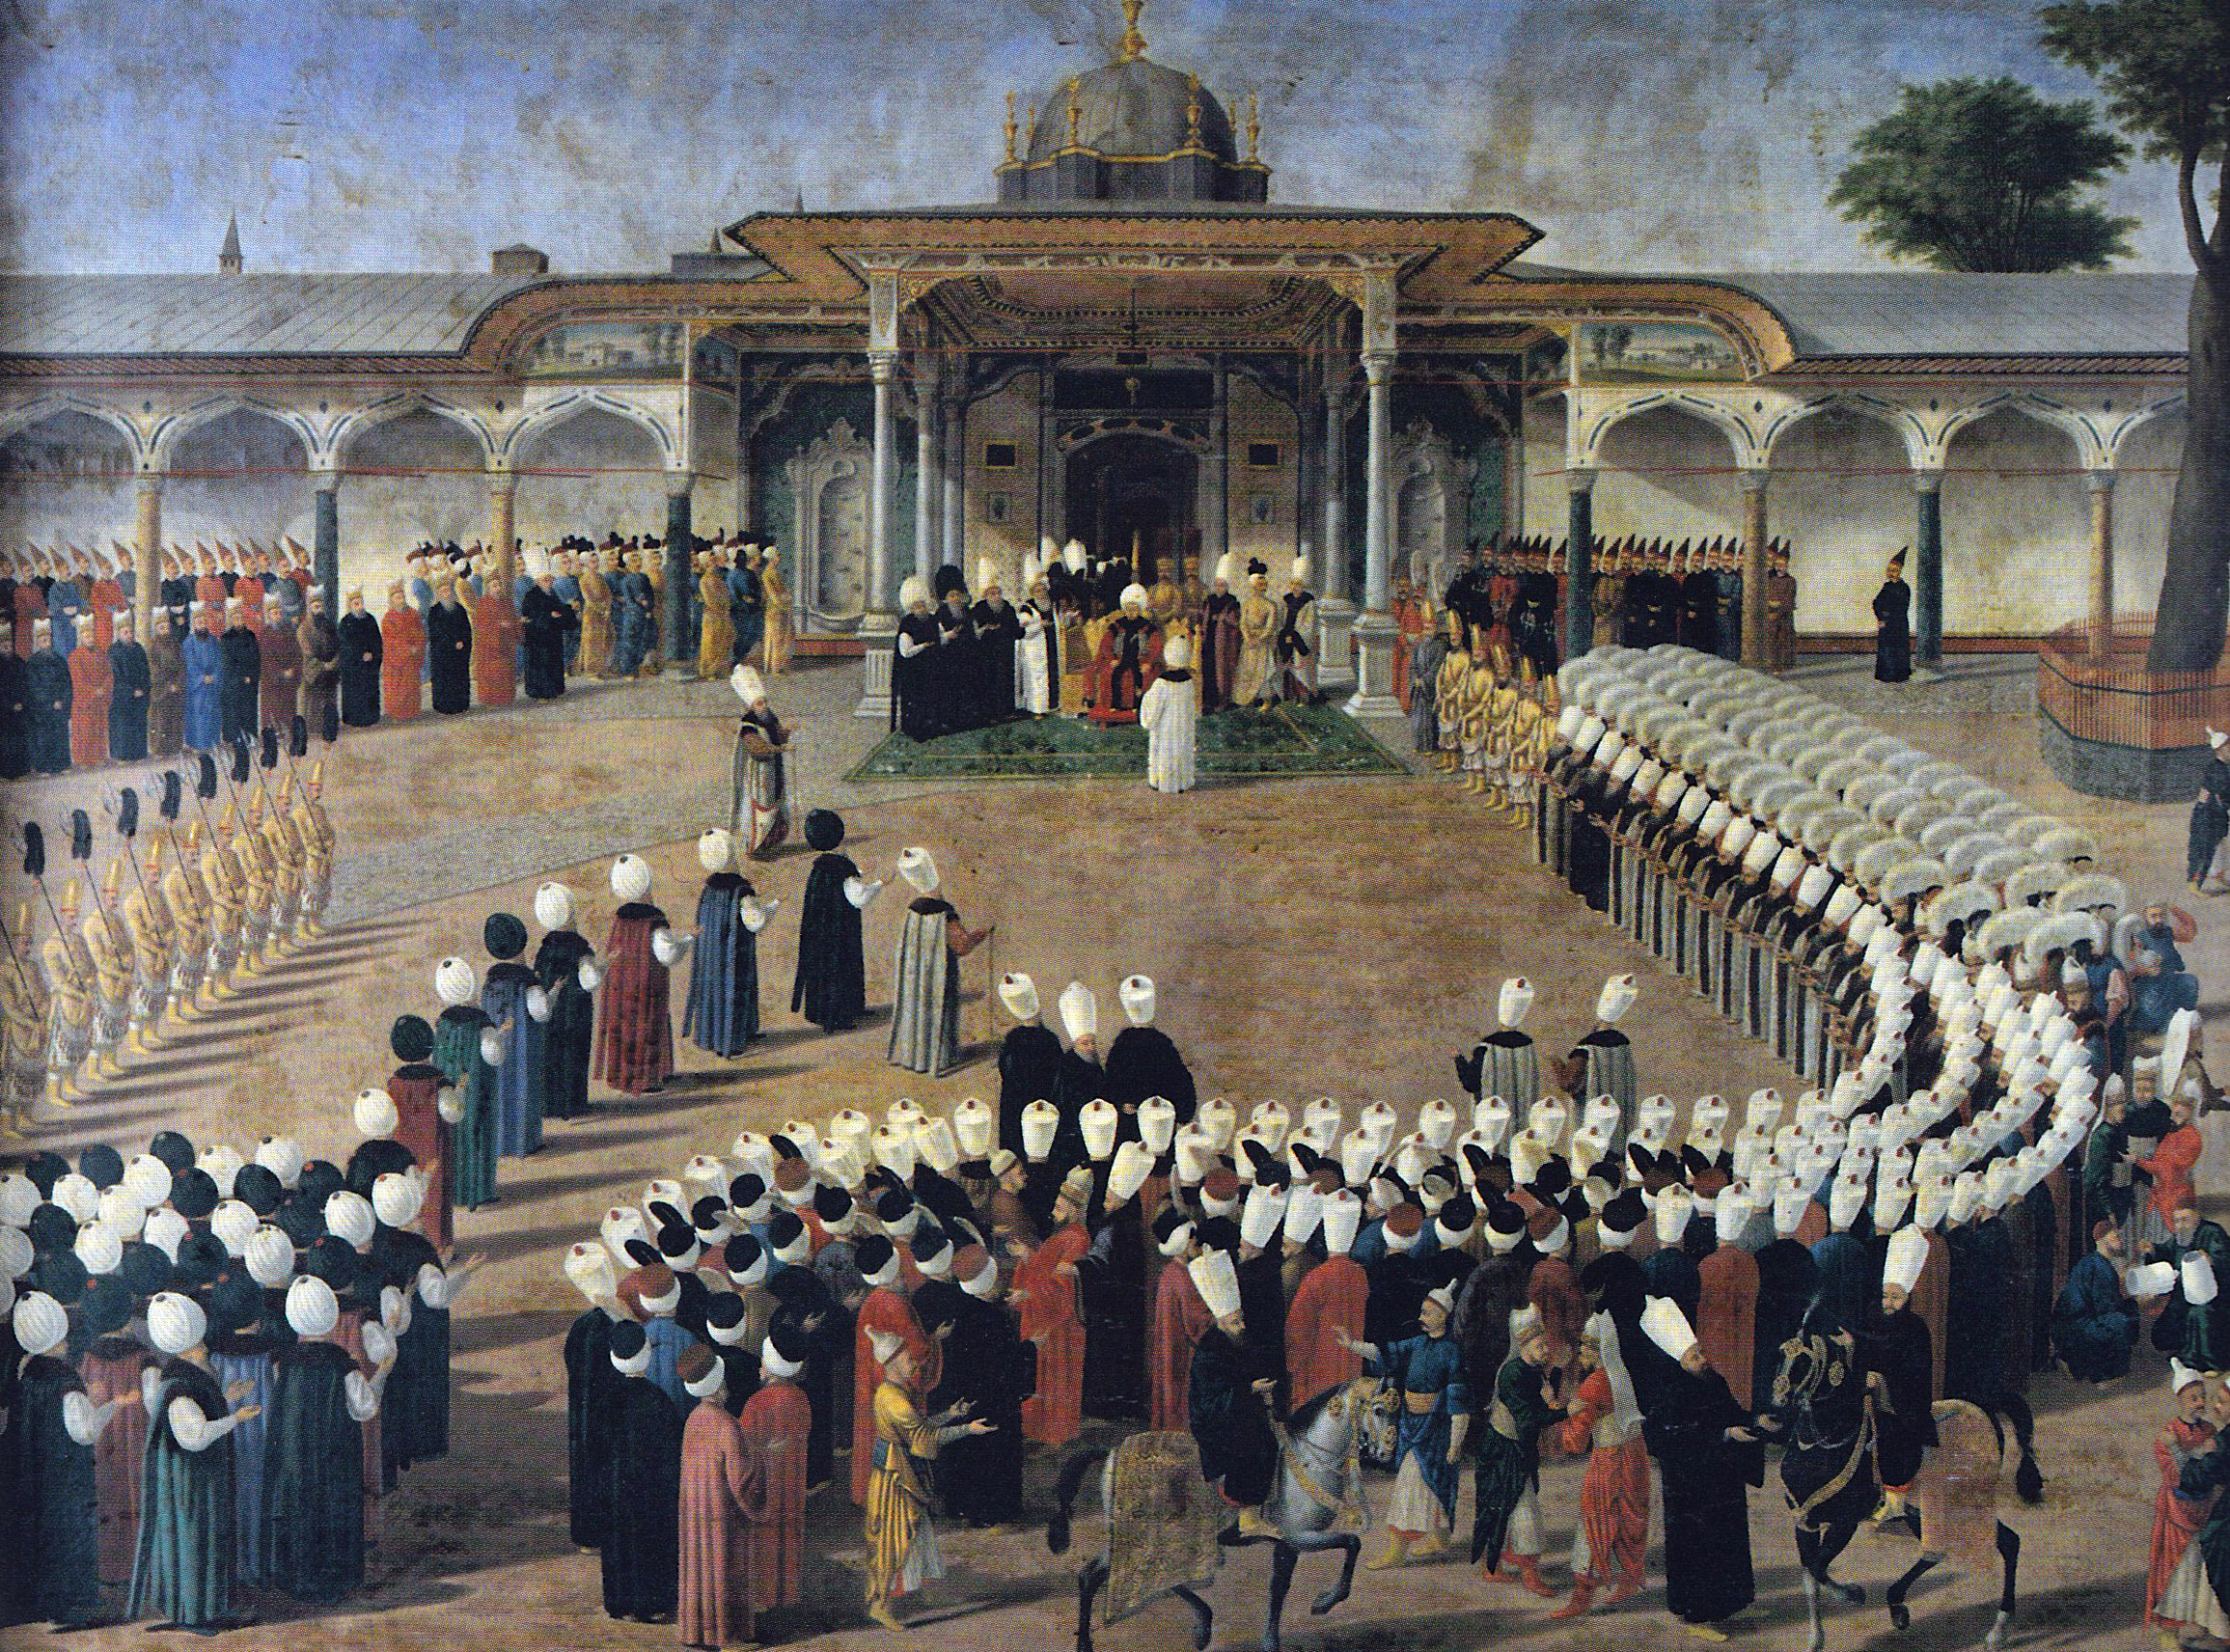 Selim III receiving dignitaries during an audience at the Gate of Felicity, Topkapı Palace.